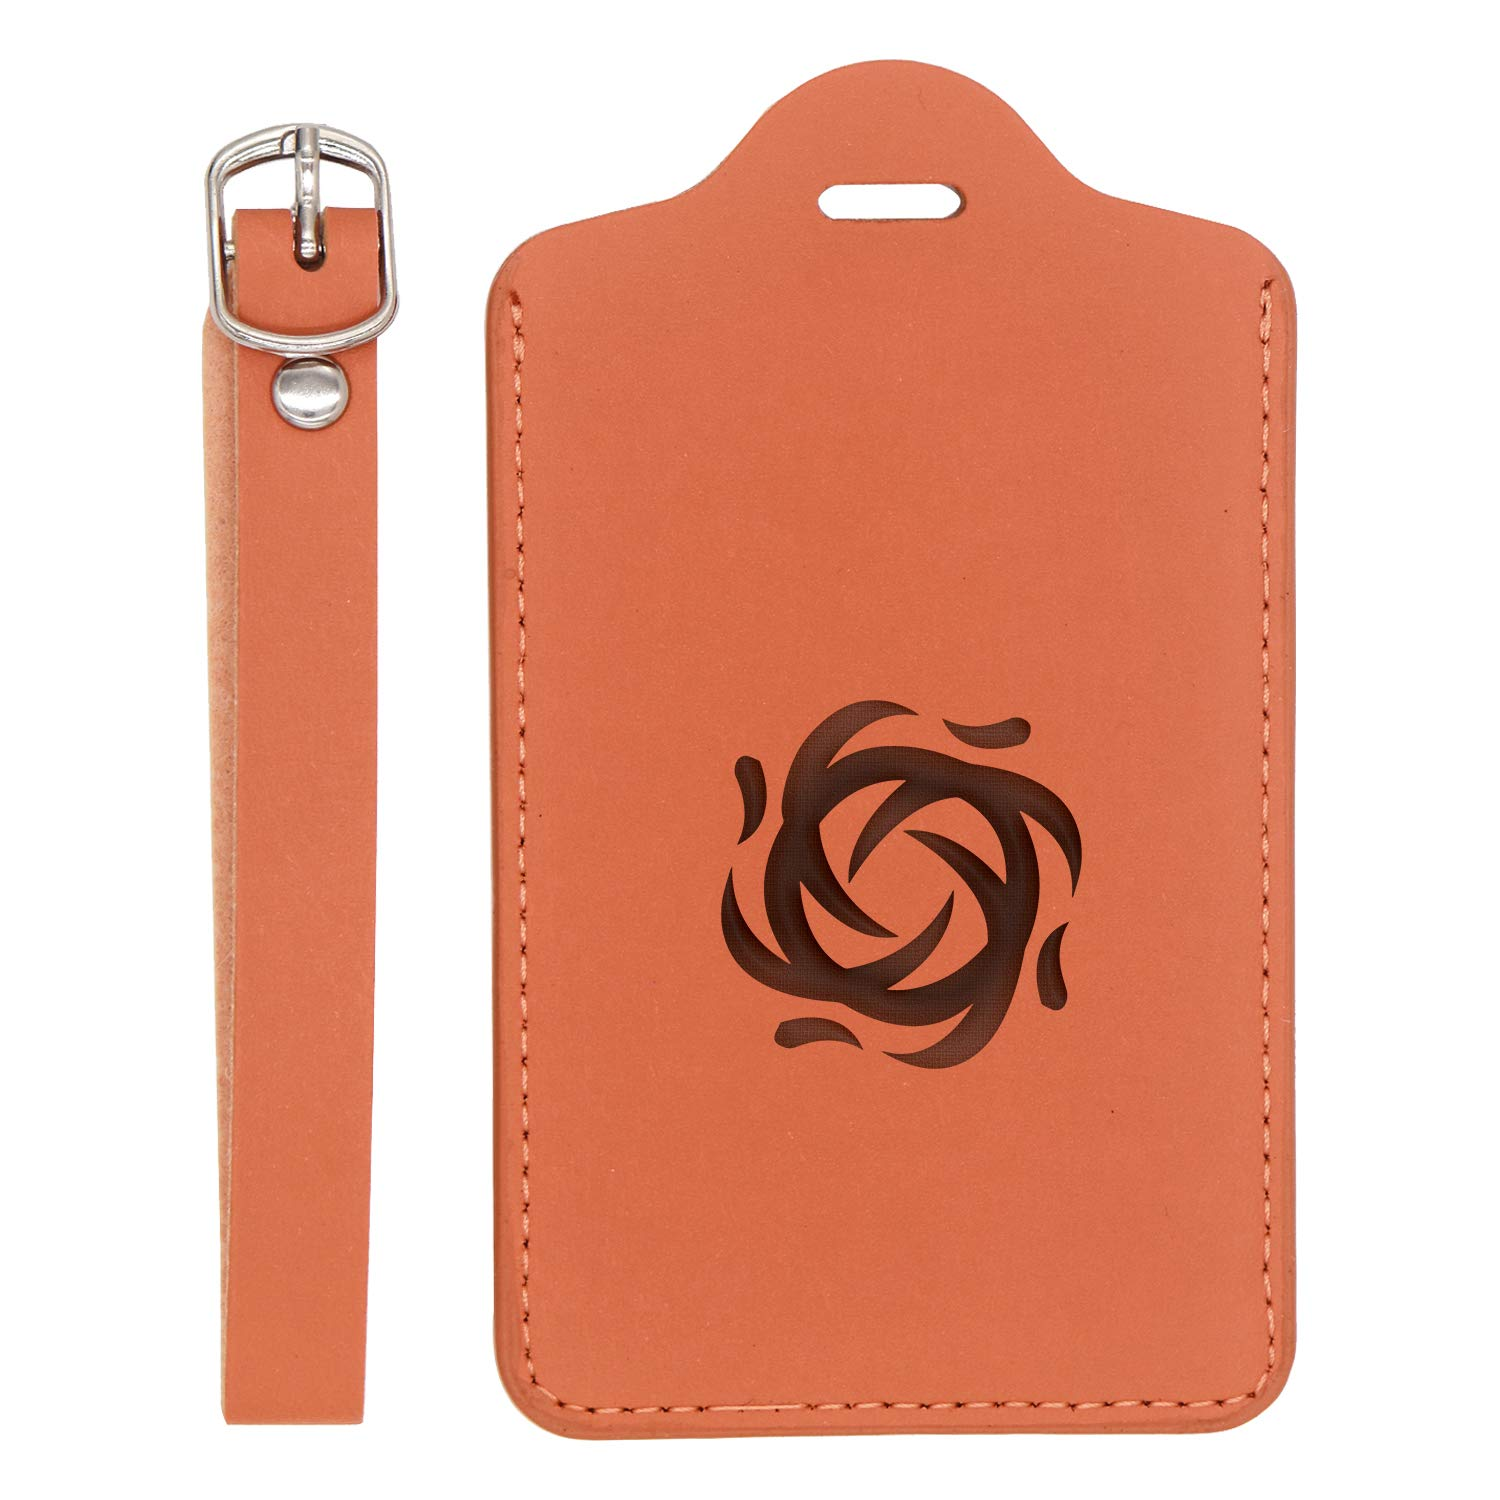 London Tan - Set Of 2 - United States Standard Sehun Wind Exo K Kpop Engraved Synthetic Pu Leather Luggage Tag Handcrafted By Mastercraftsmen For Any Type Of Luggage